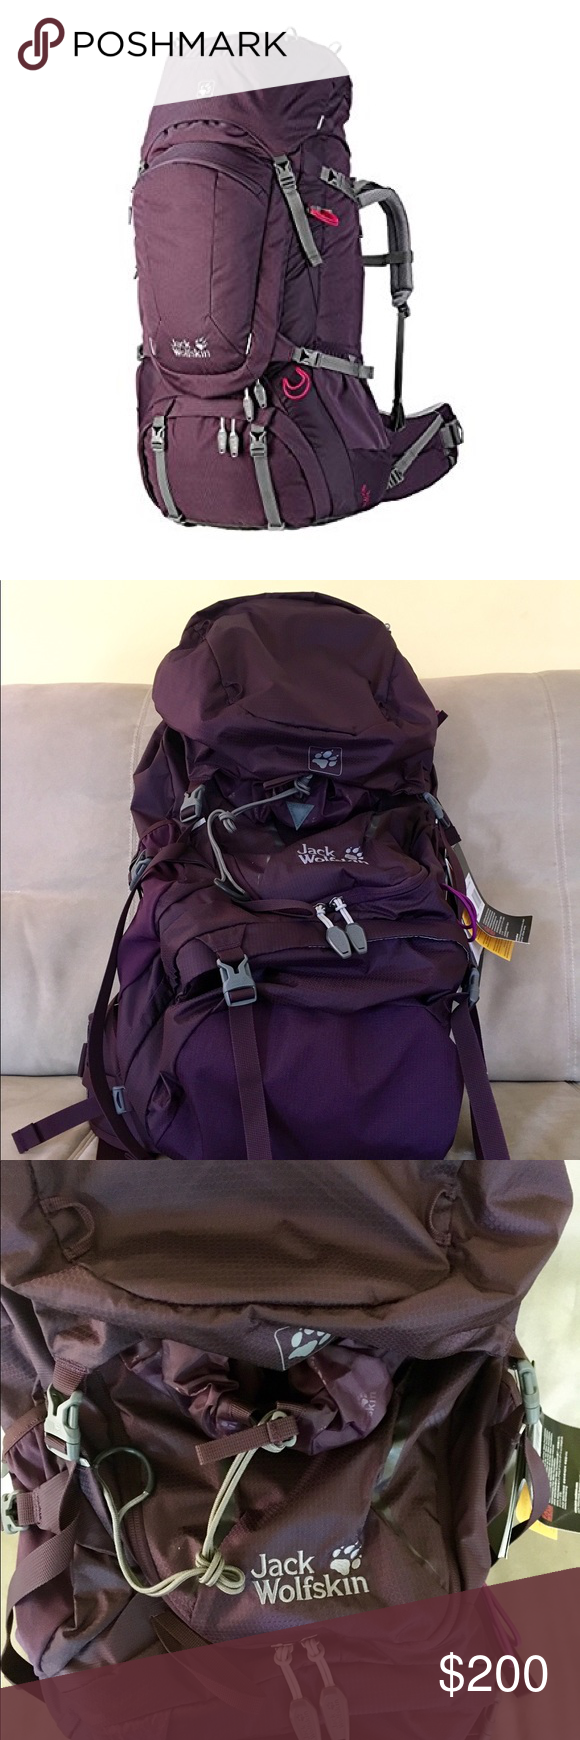 3301bf93d62 Jack Wolfskin Highland Trail XT 45 Backpacking & hiking rucksack made for  women! It is individually adjustable and extensively cushioned.